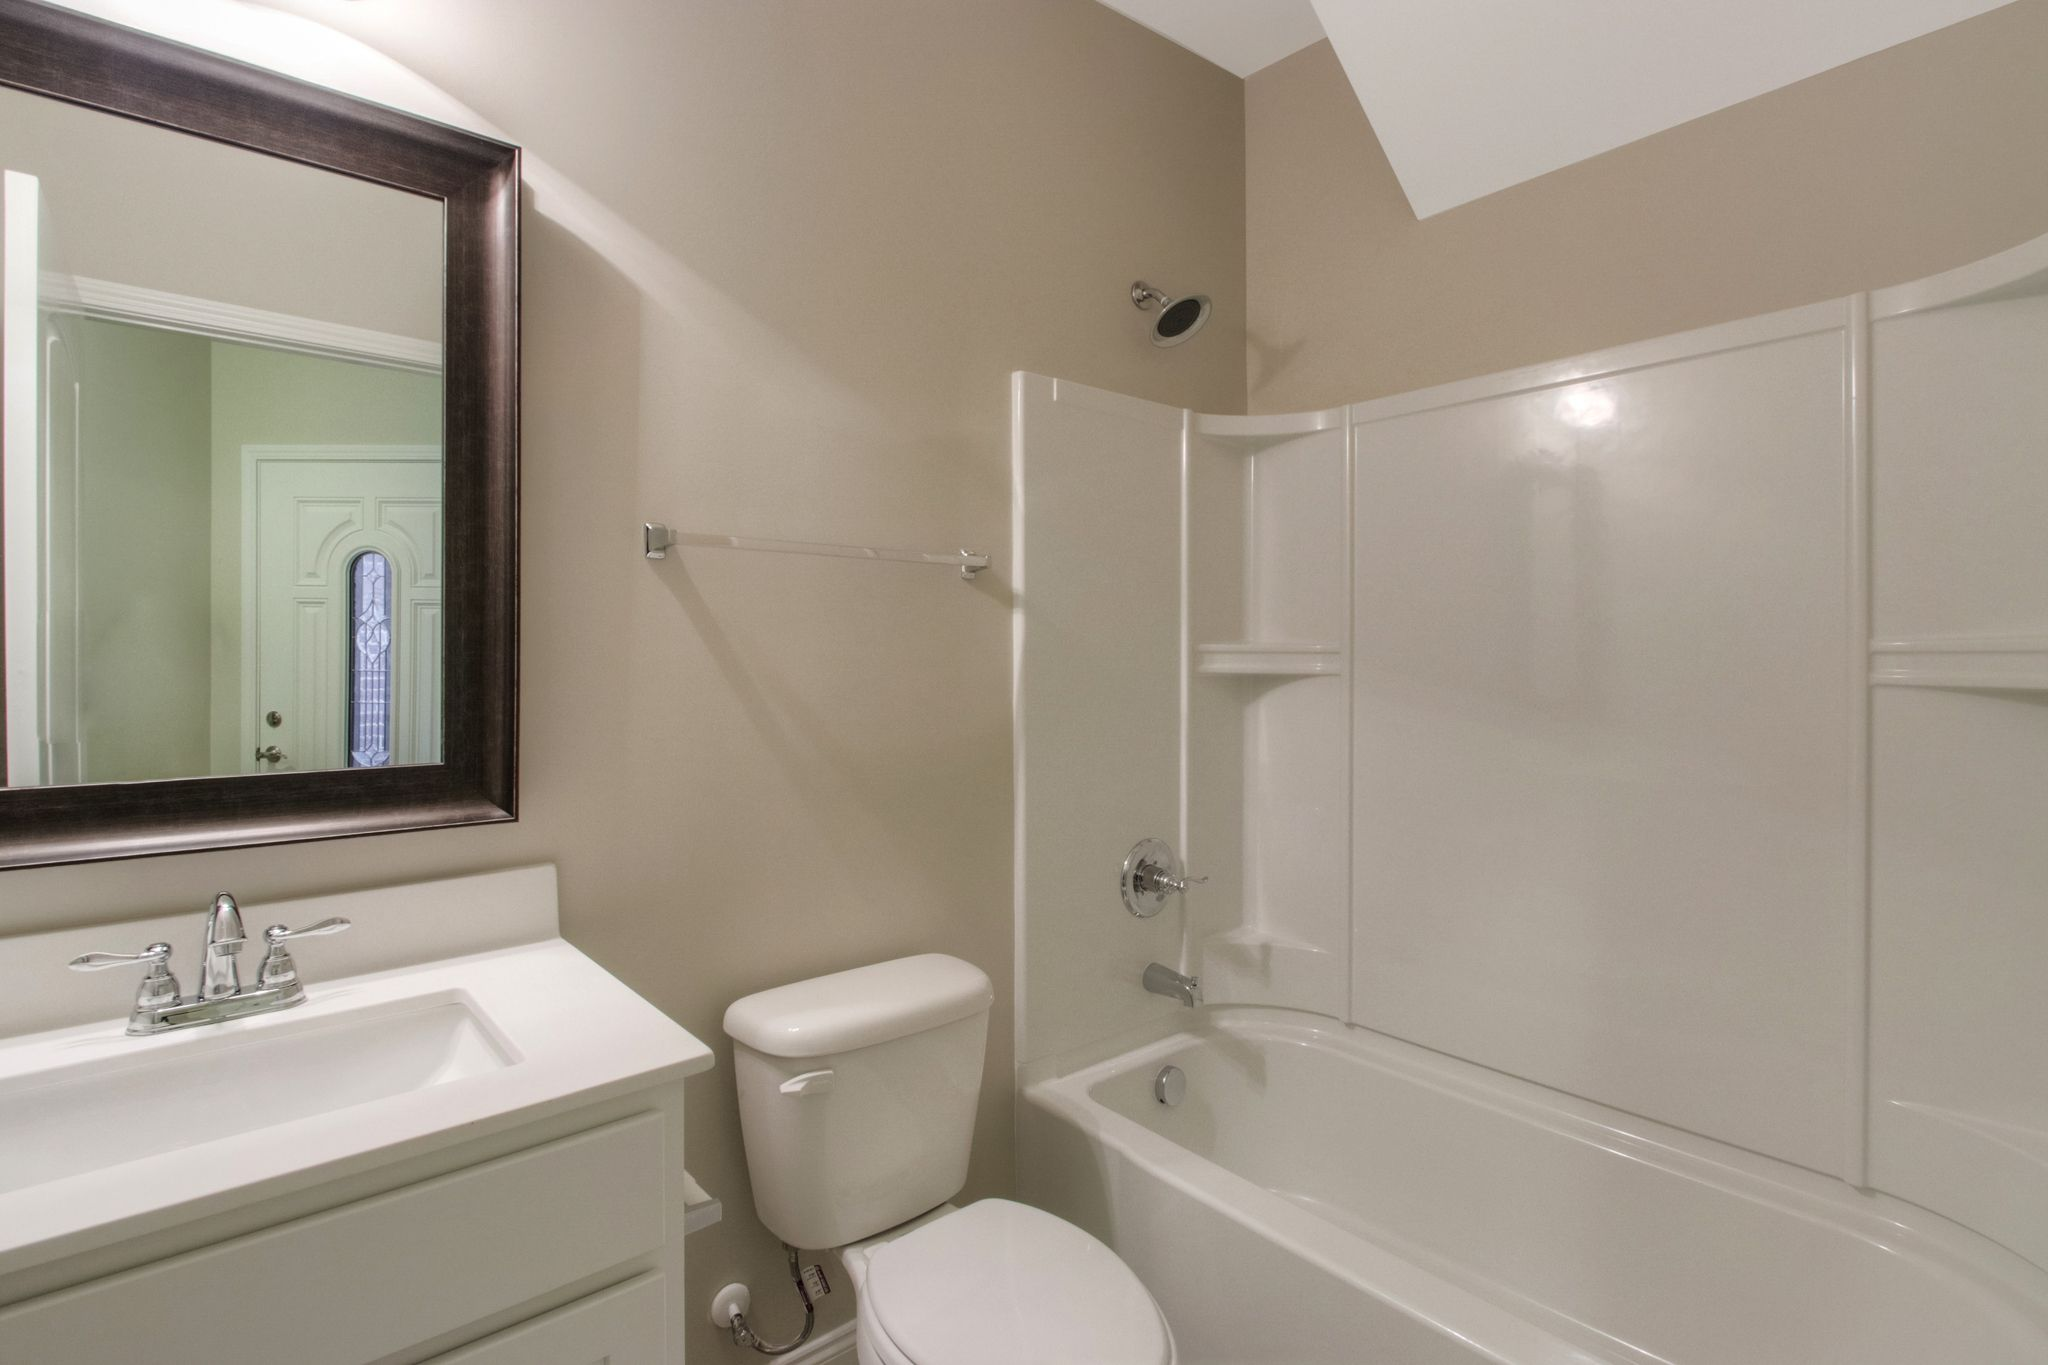 Bathroom featured in The Ashleigh Courtyard Cottage By Goodall Homes in Knoxville, TN